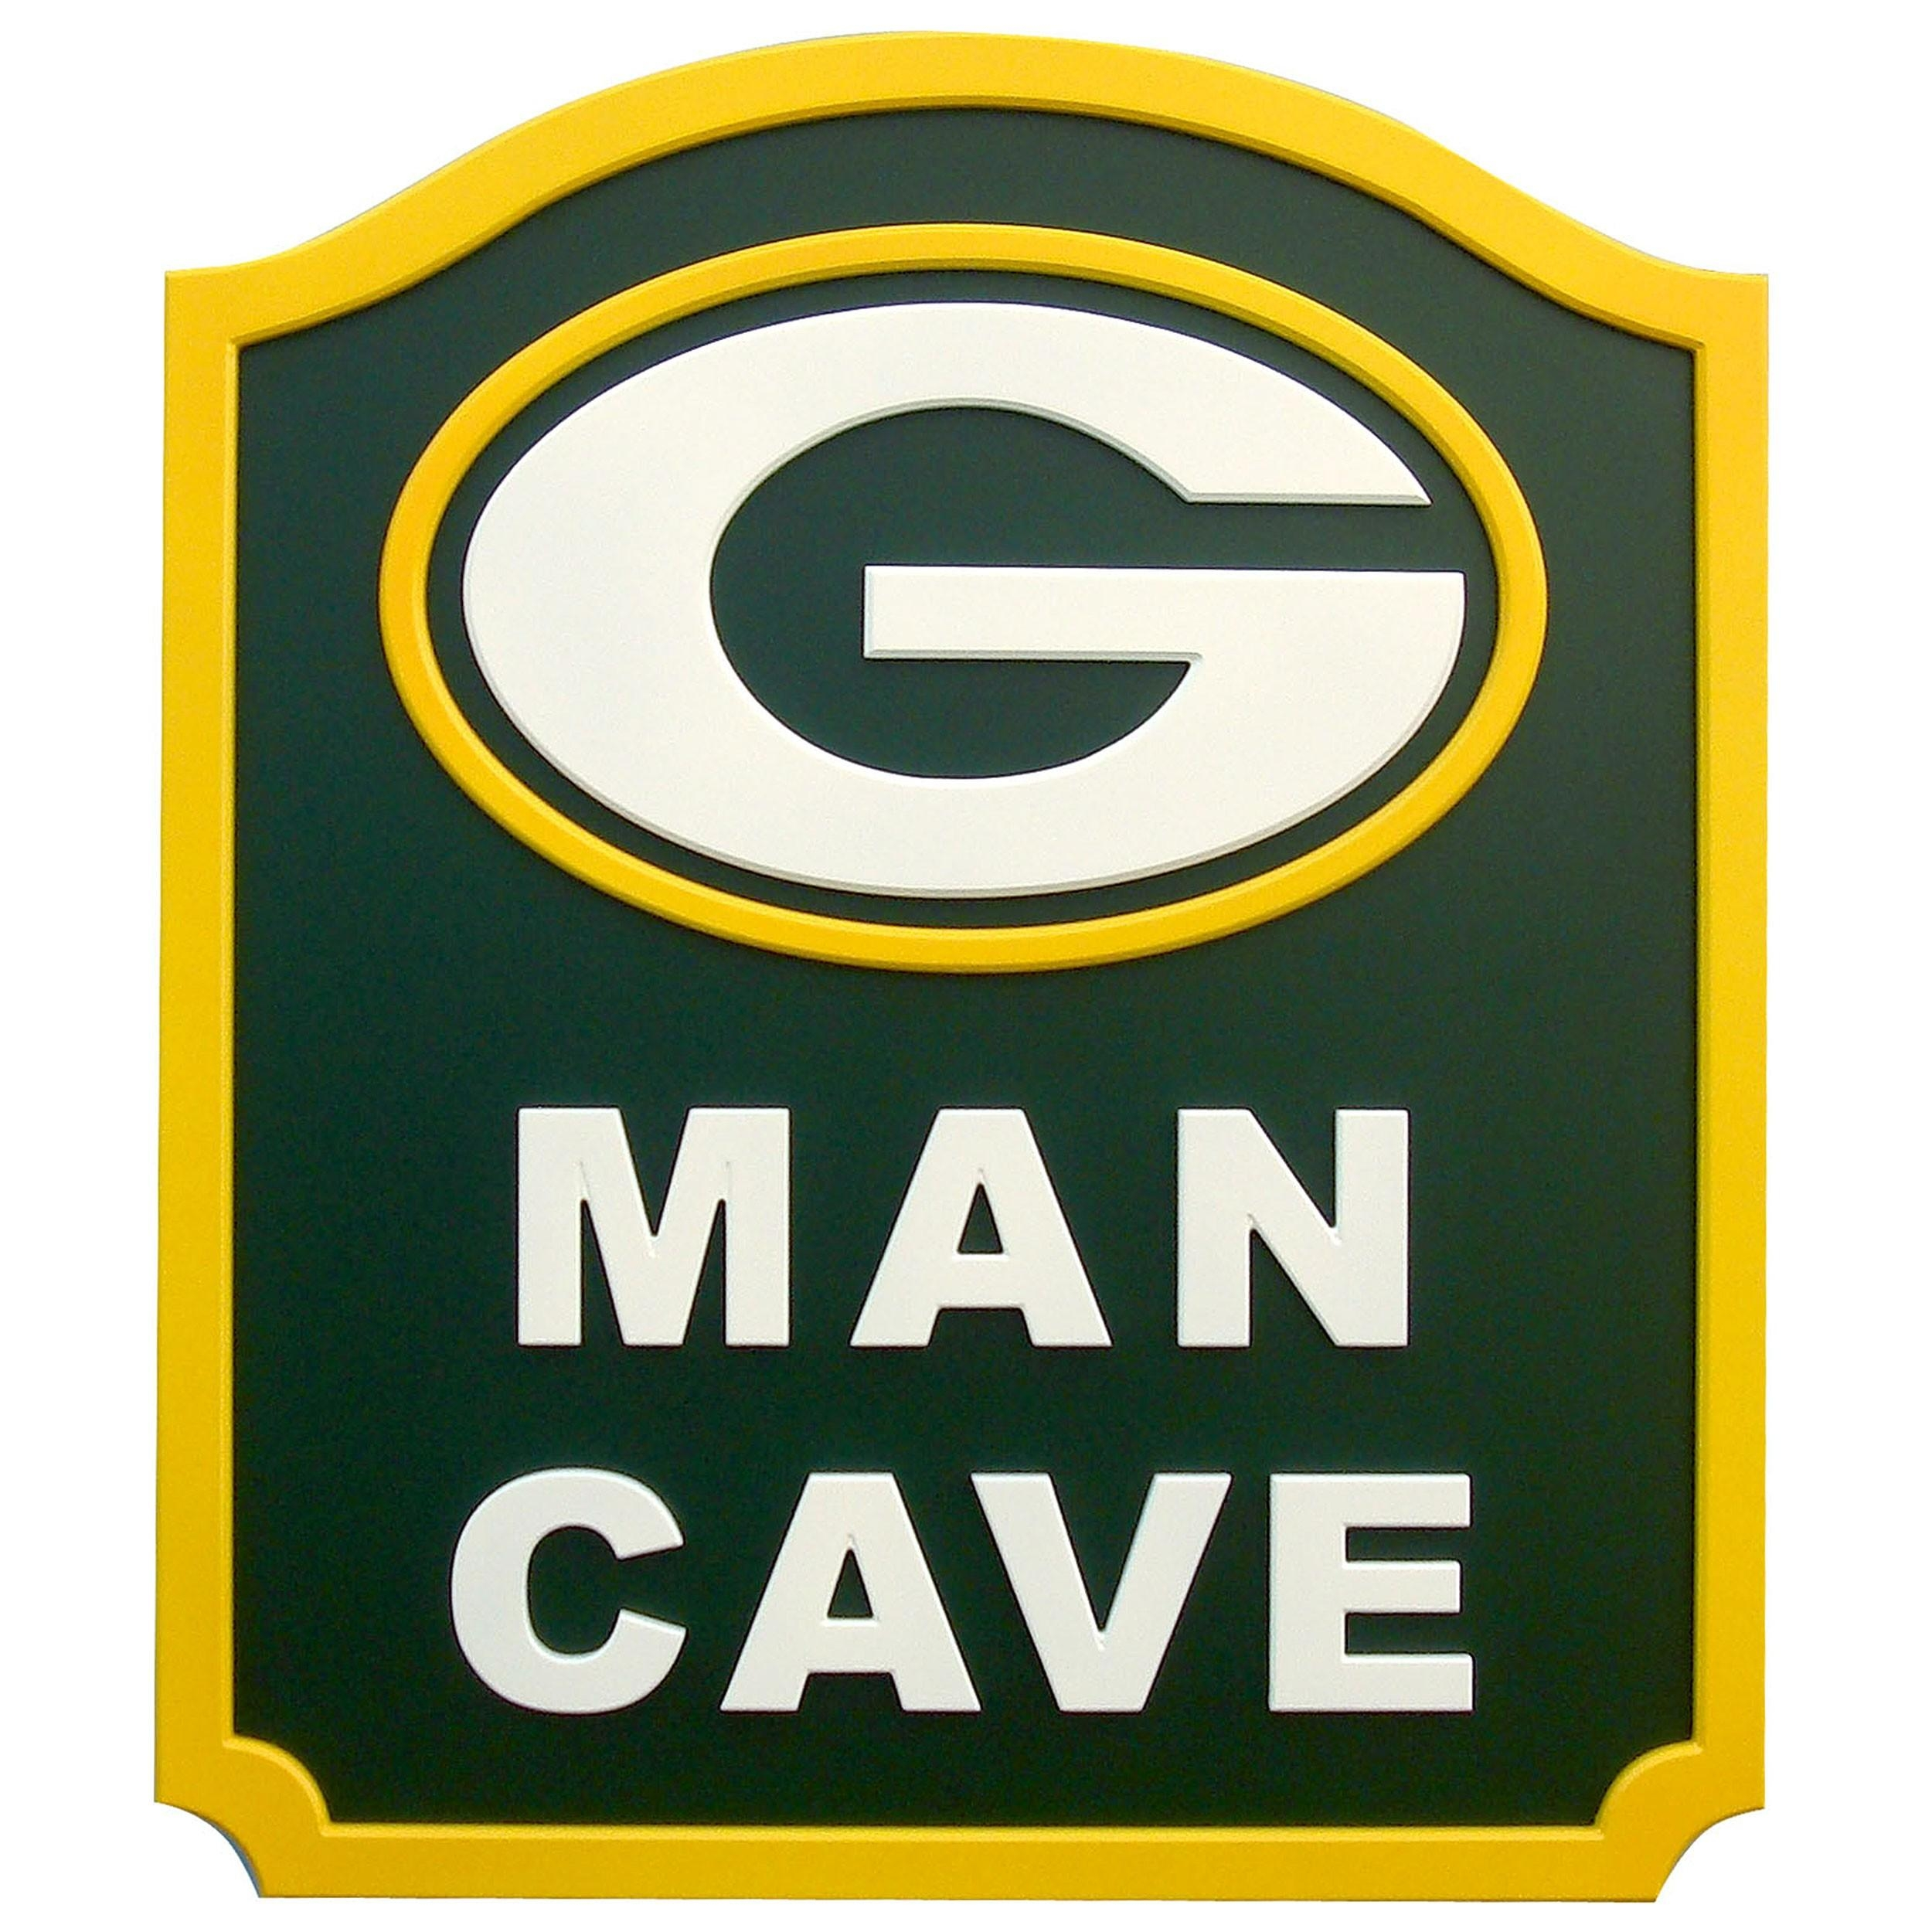 Wall Decor – Home & Office For Green Bay Packers Wall Art (Image 19 of 20)